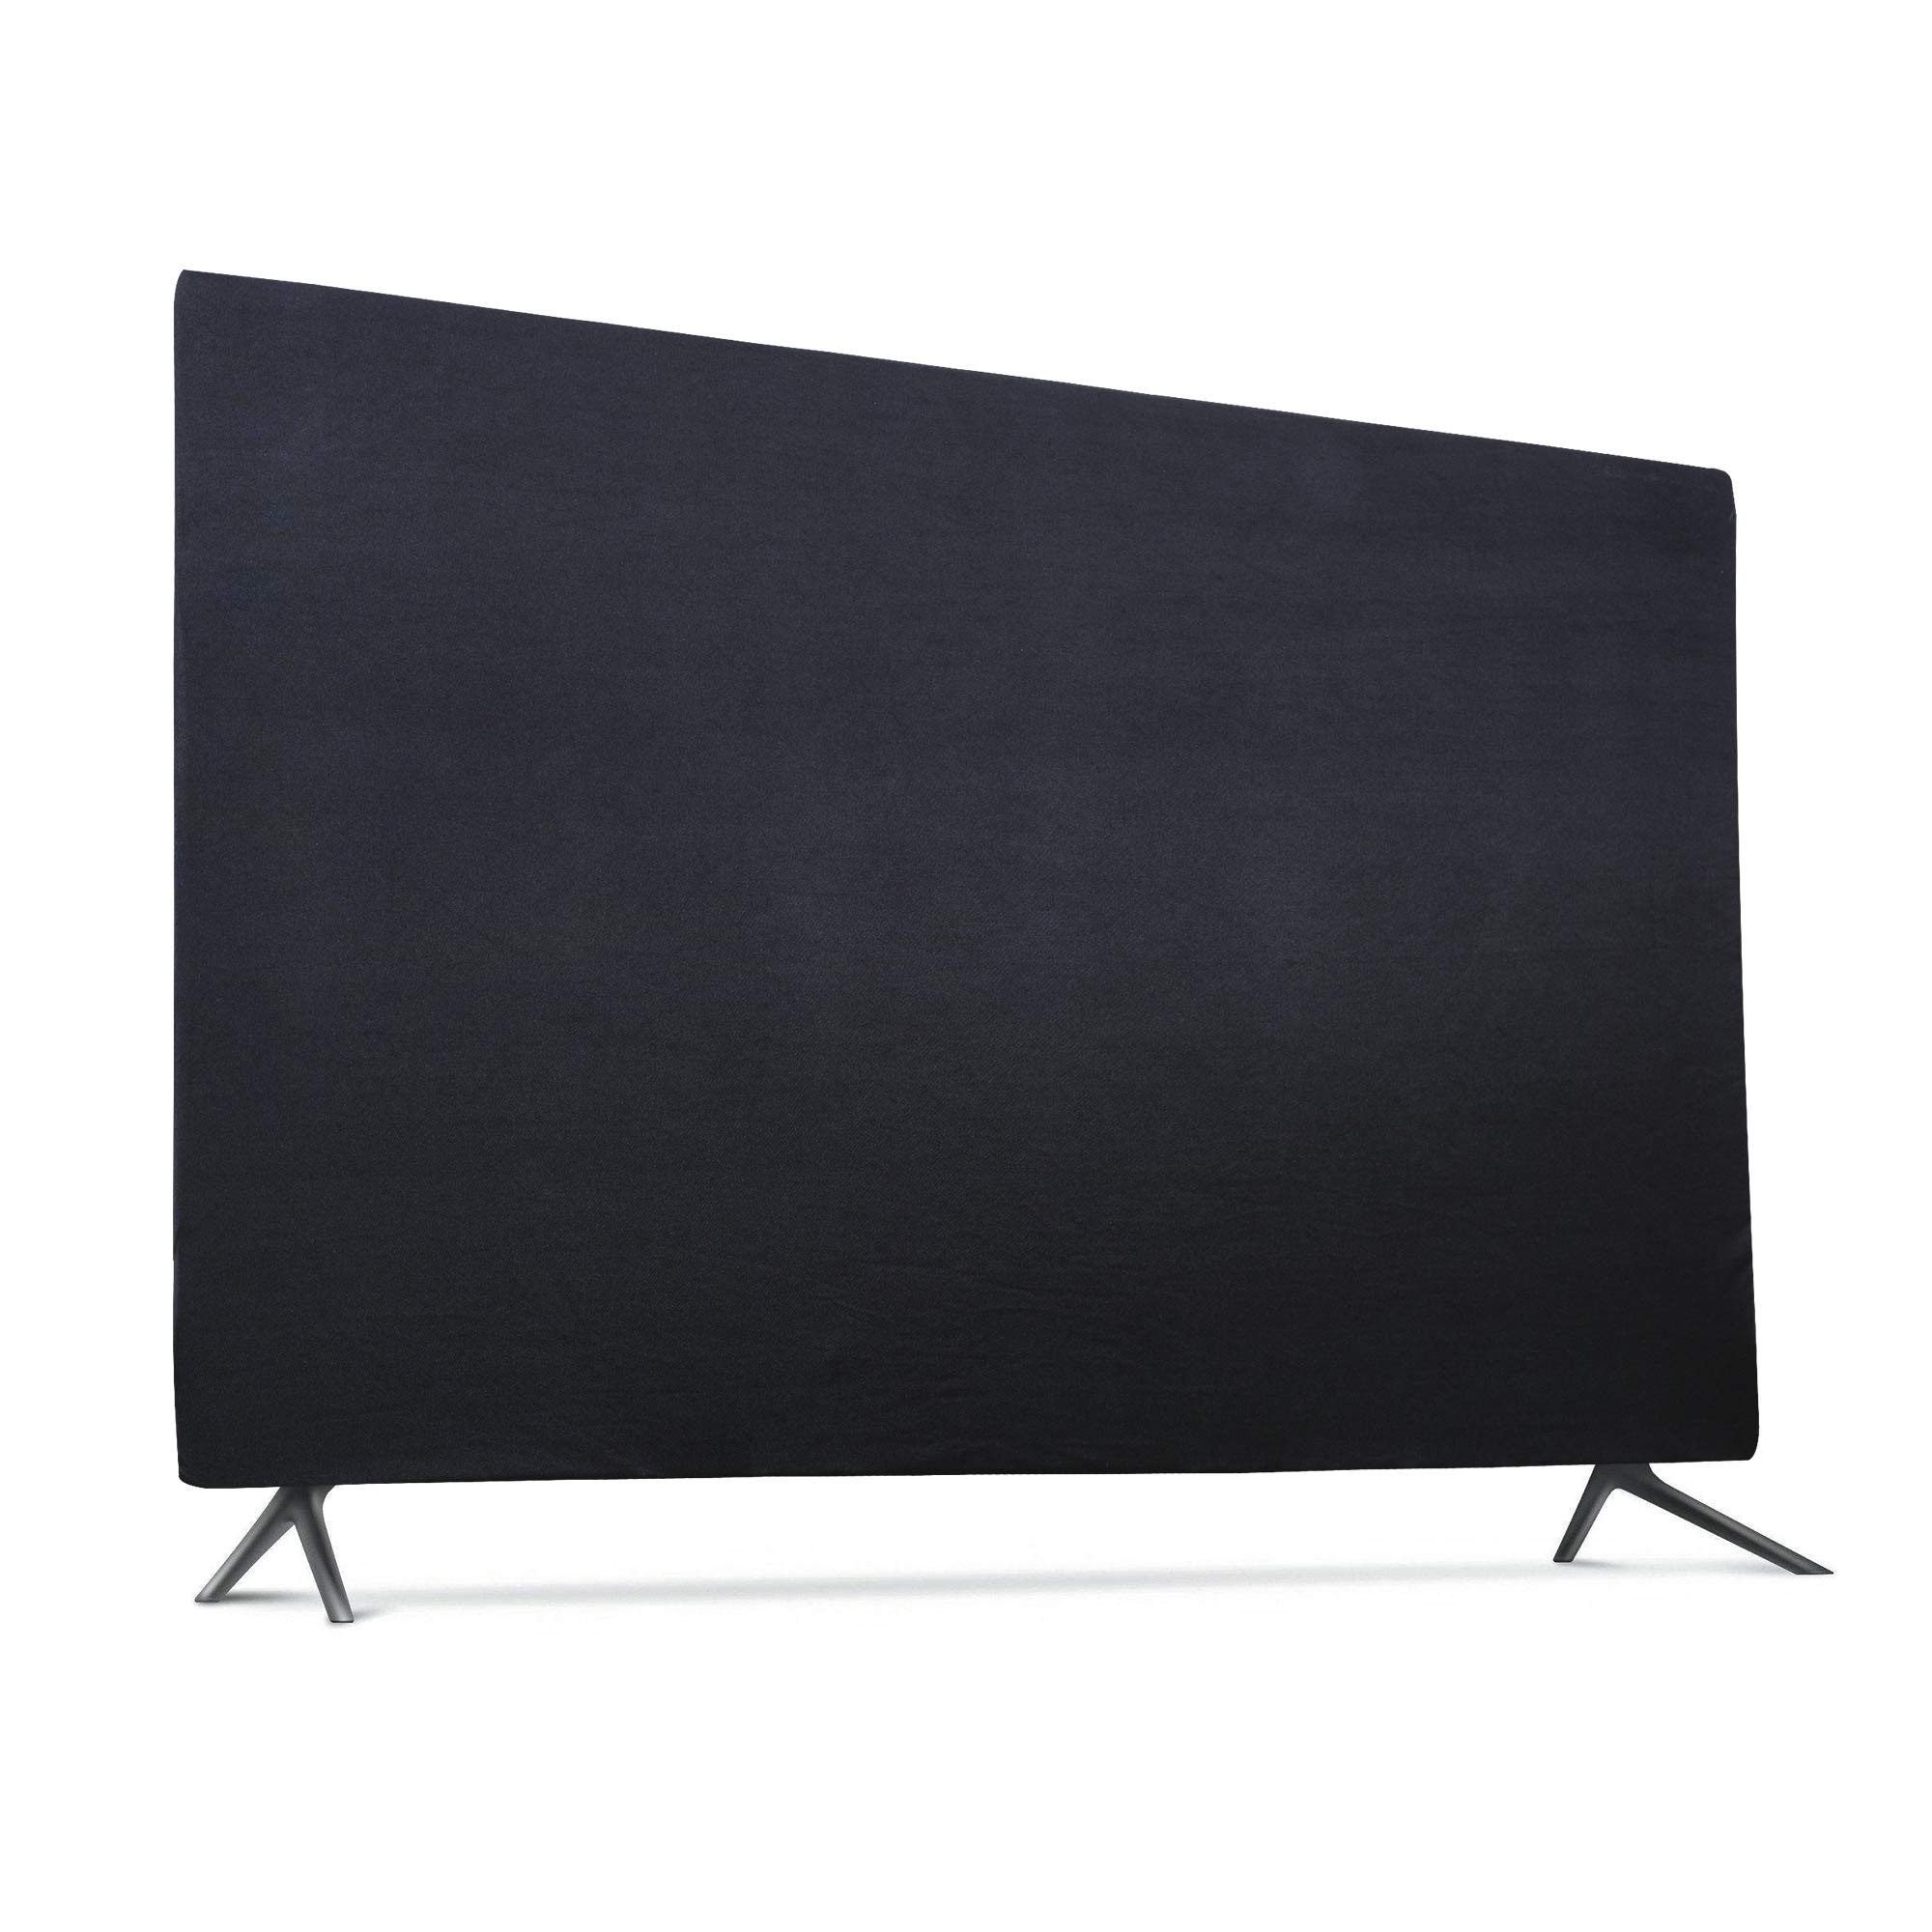 Indoor TV Set Cover, Soft Lycra Fabric Universal 65'' Flat Screen Dust-Proof Protector (65'', Black) by TXesign